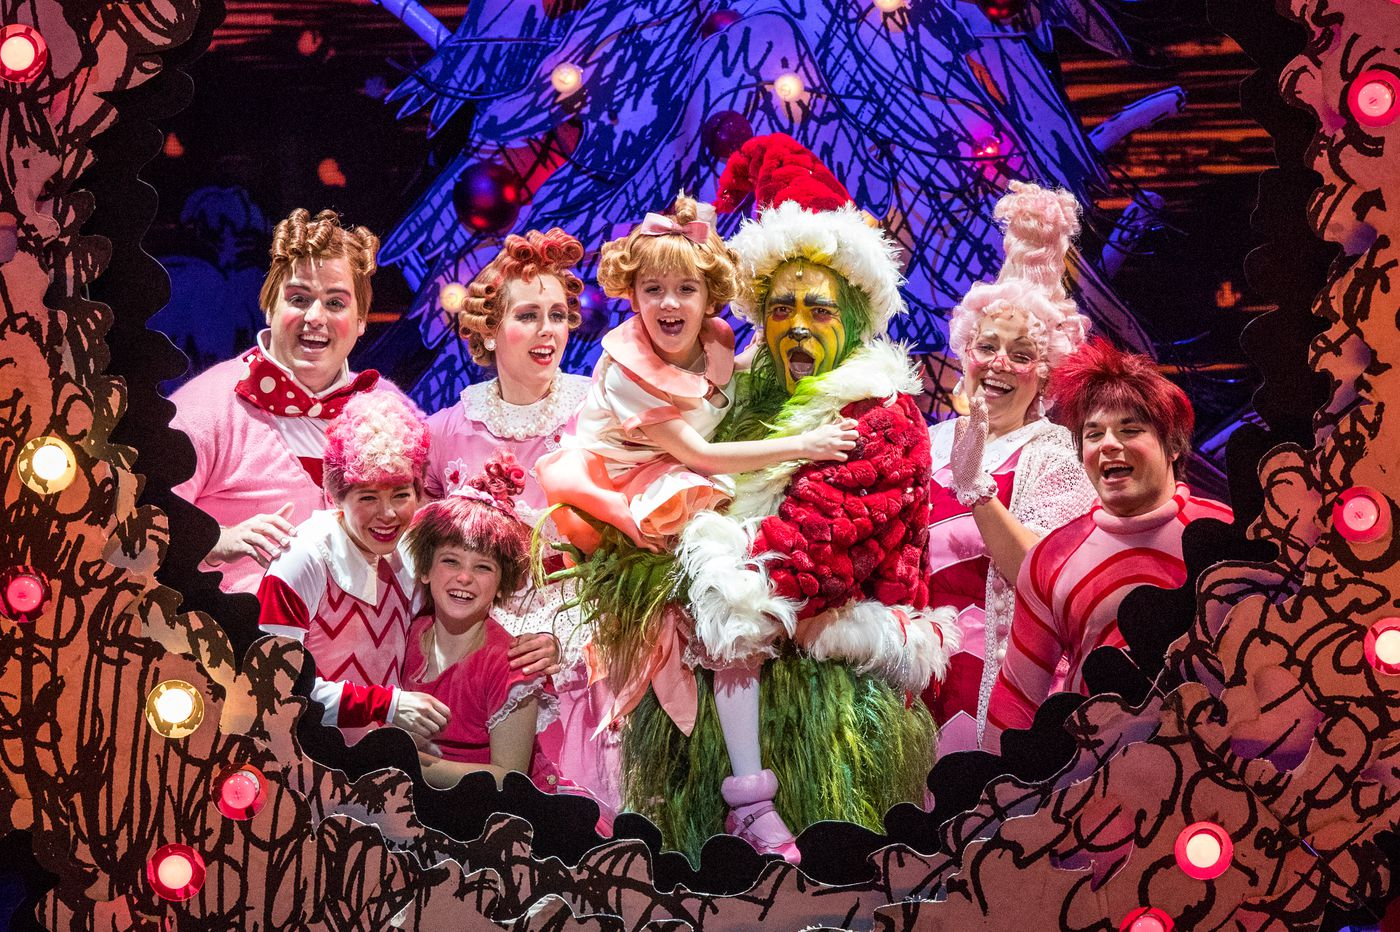 'How the Grinch Stole Christmas!' at the Merriam Theater ends up stealing hearts